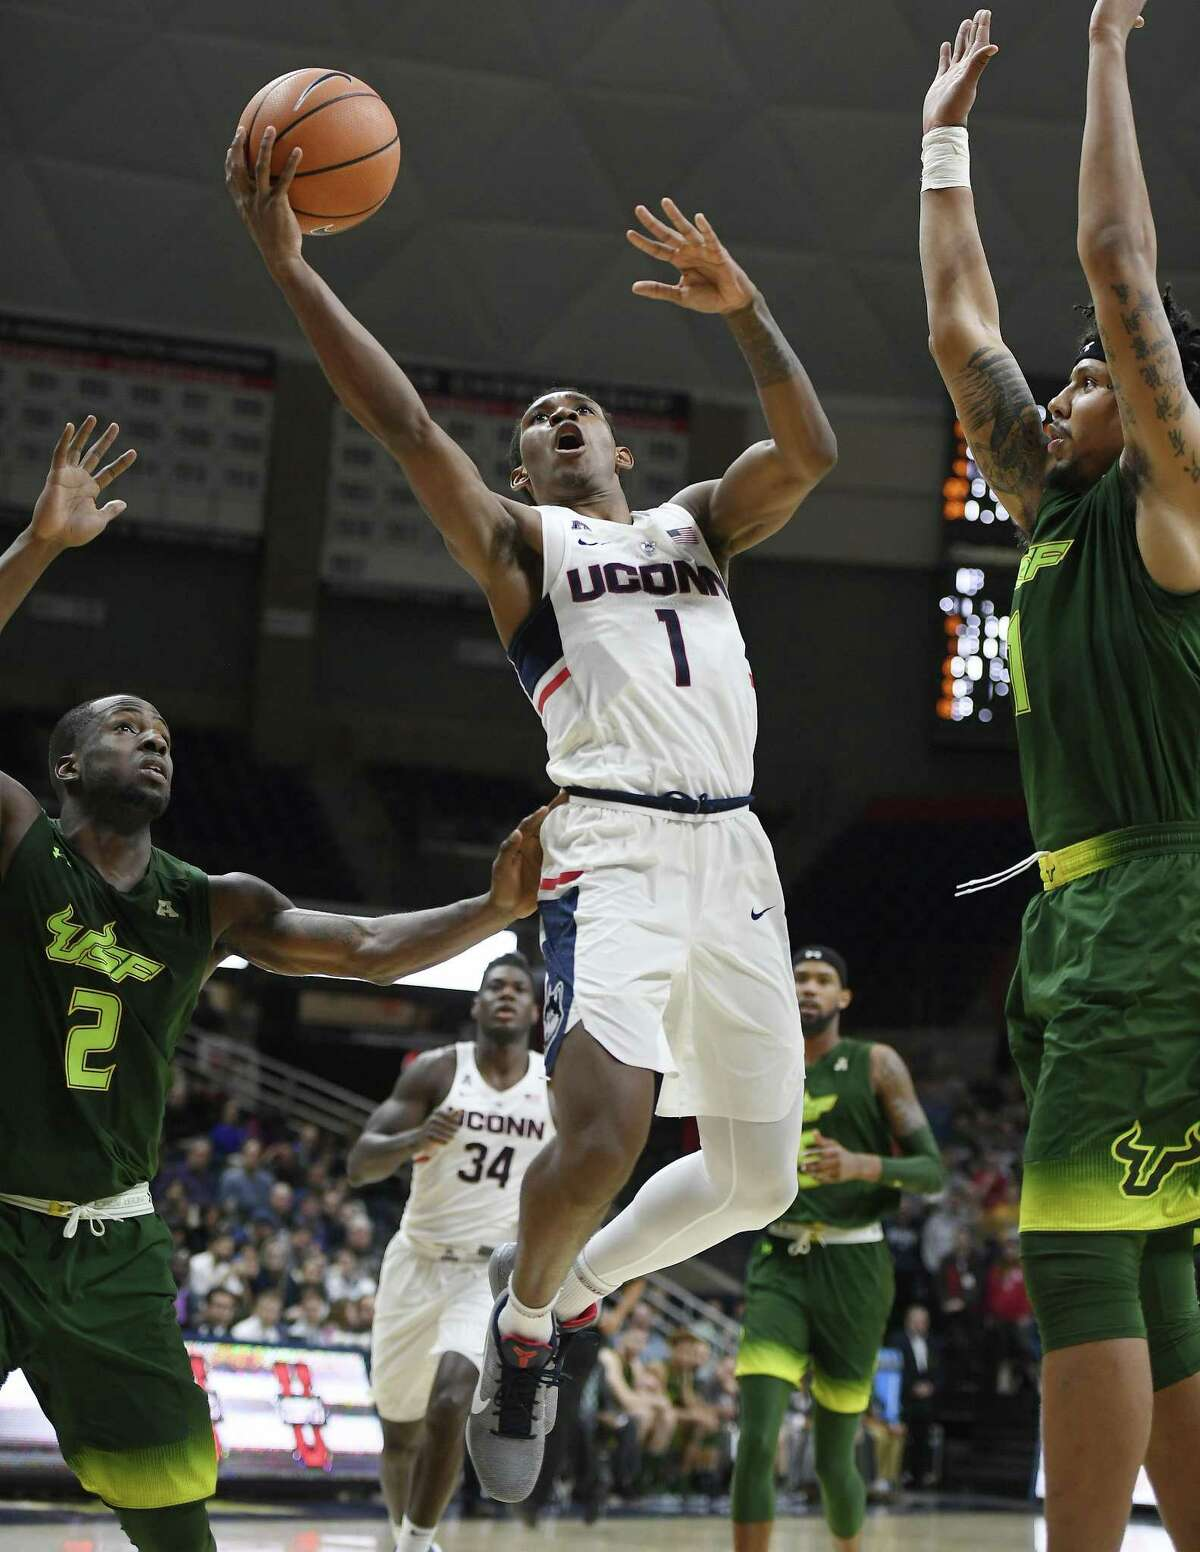 UConn's Christian Vital, center, goes up for a basket as South Florida's Terrence Samuel, left, and Isaiah Manderson, right, defend during the second half on Feb. 7 in Storrs.